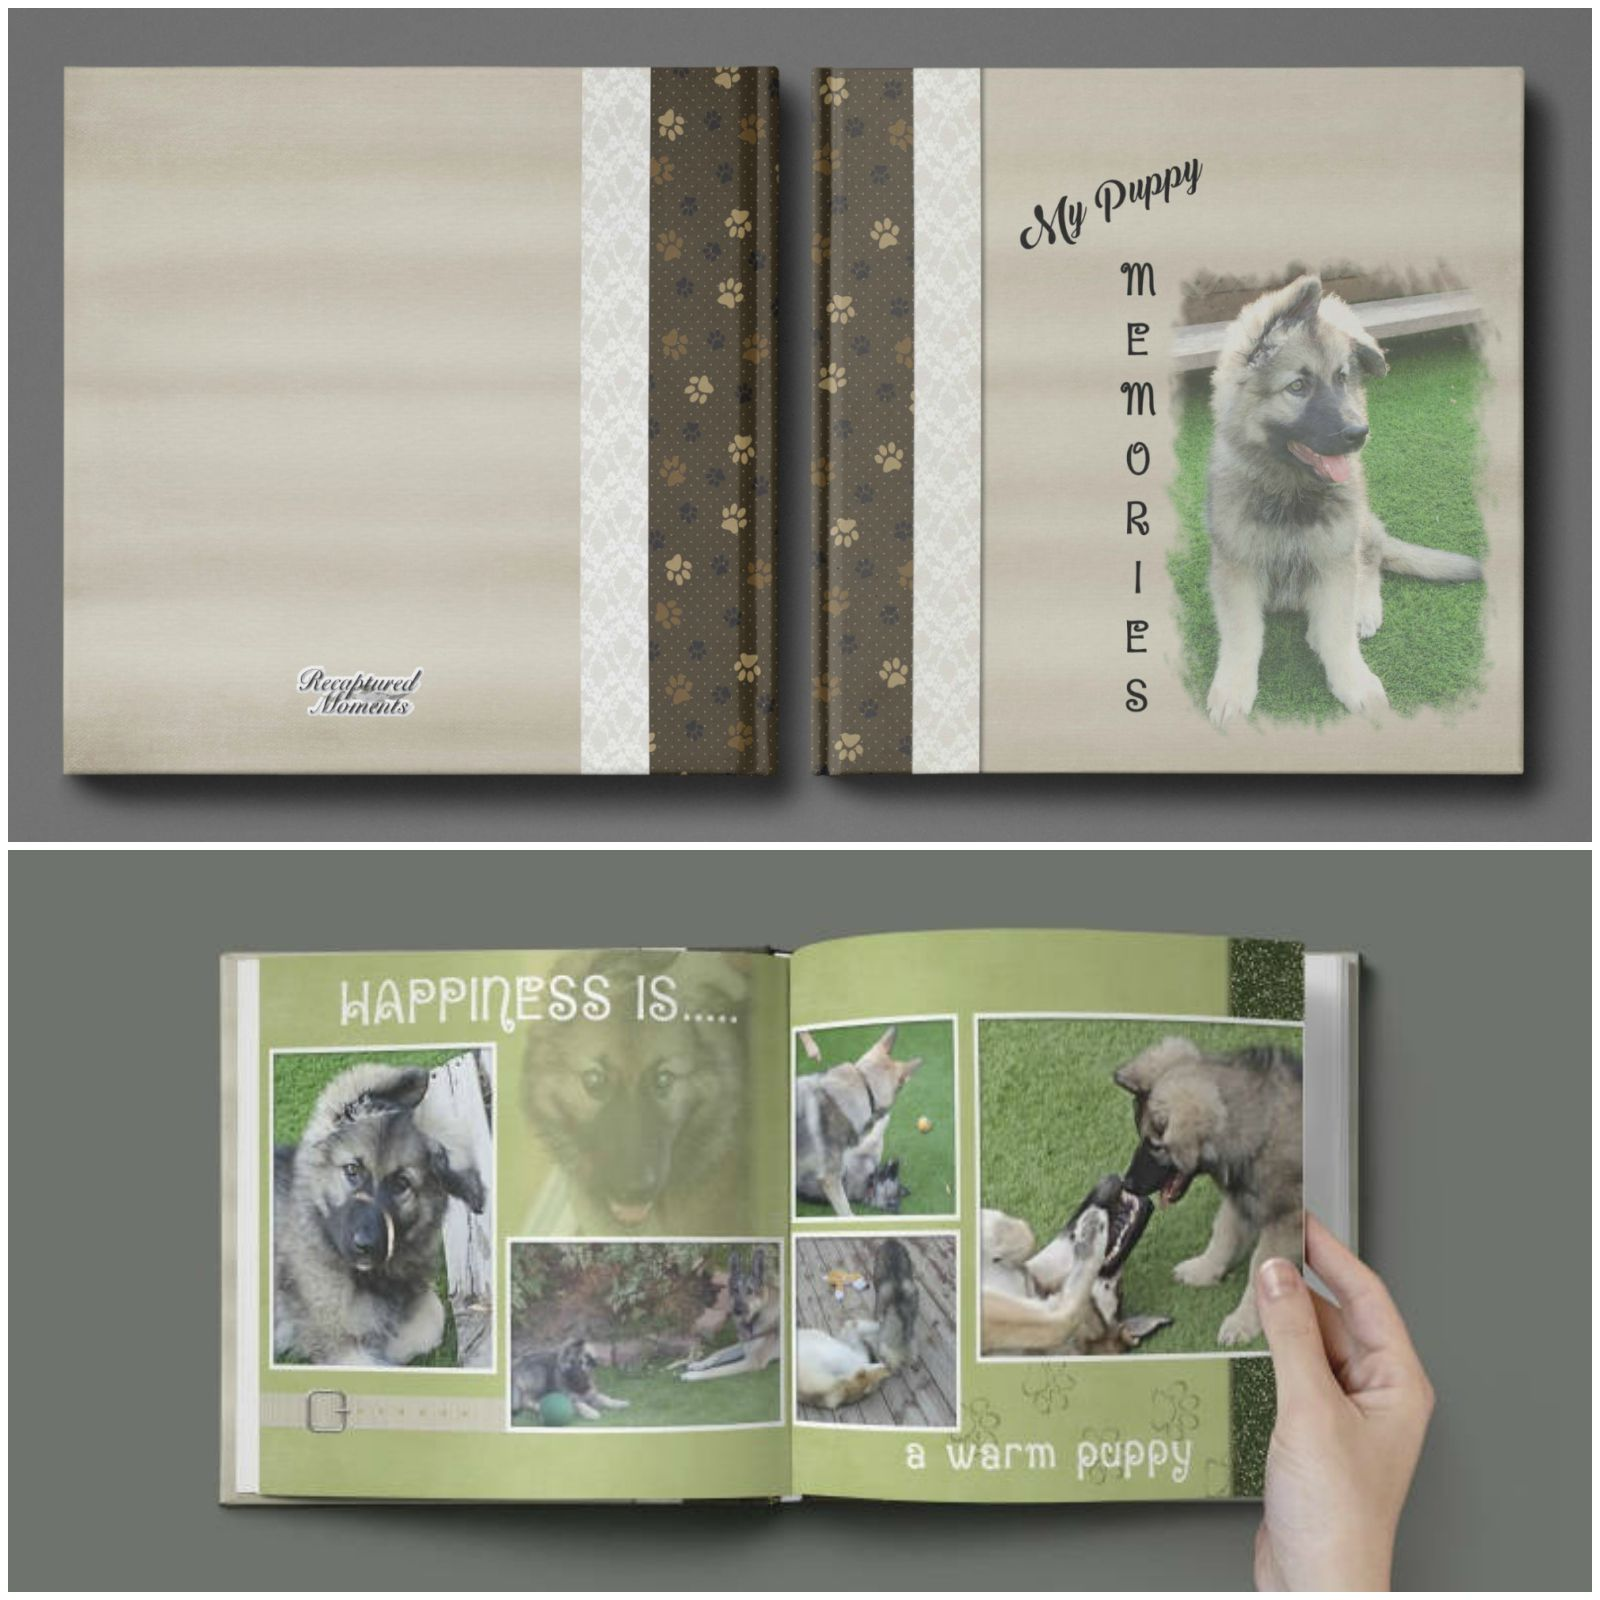 Photo books help you capture and store favorite memories you've had with your pet over the years.